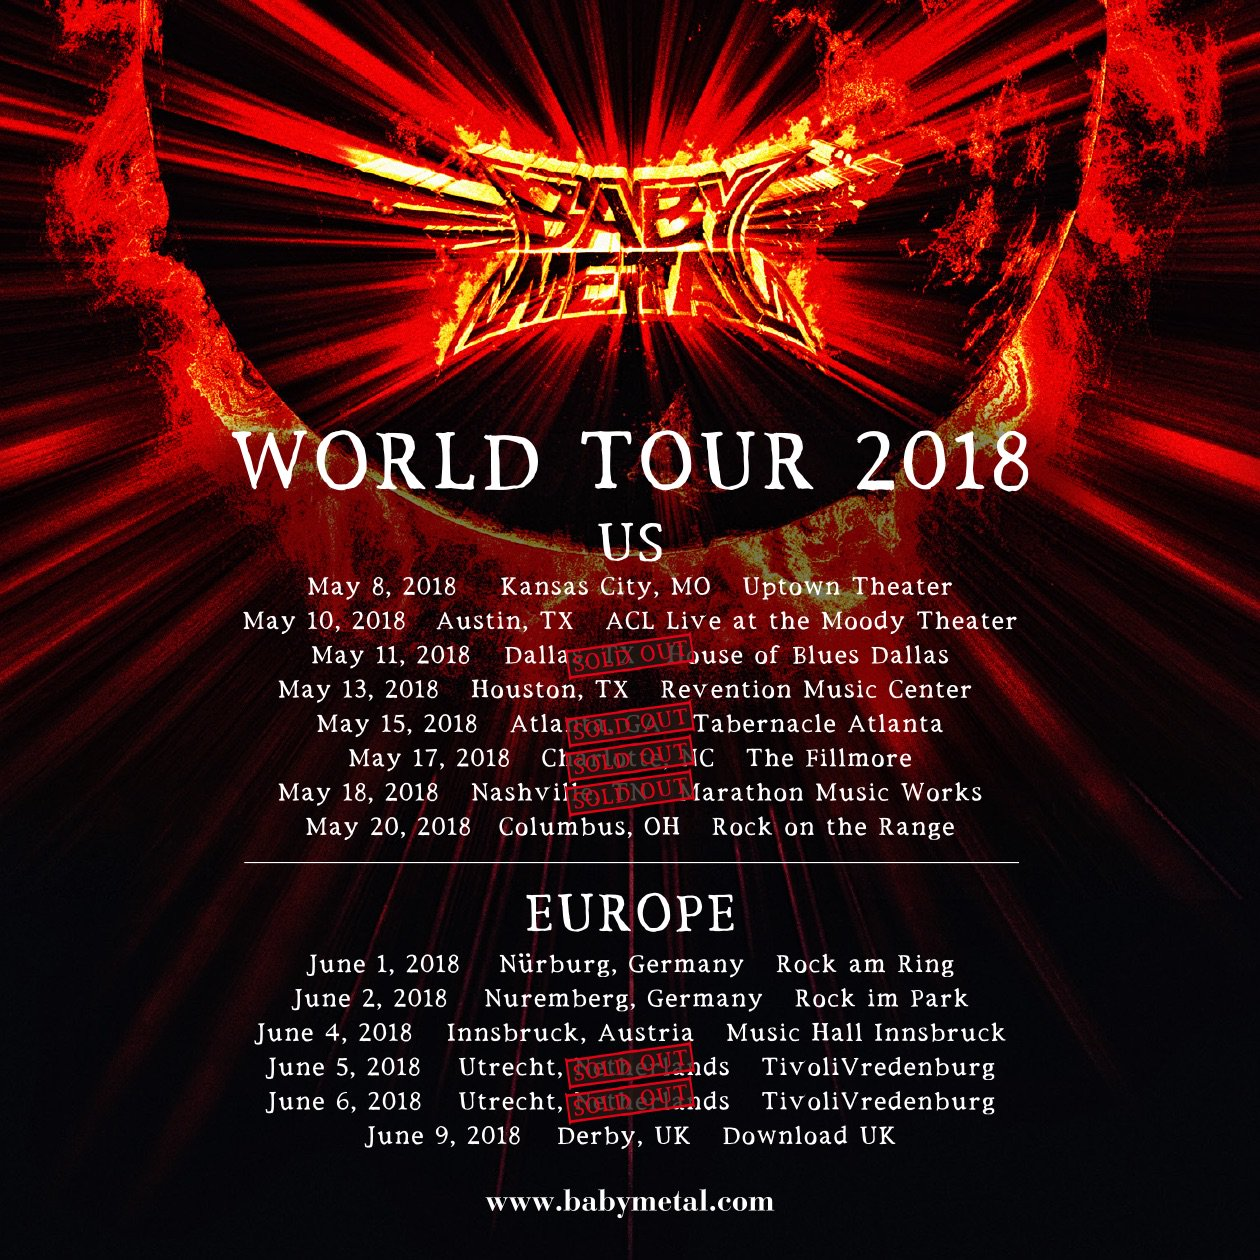 BabyMetal - World Tour 2018